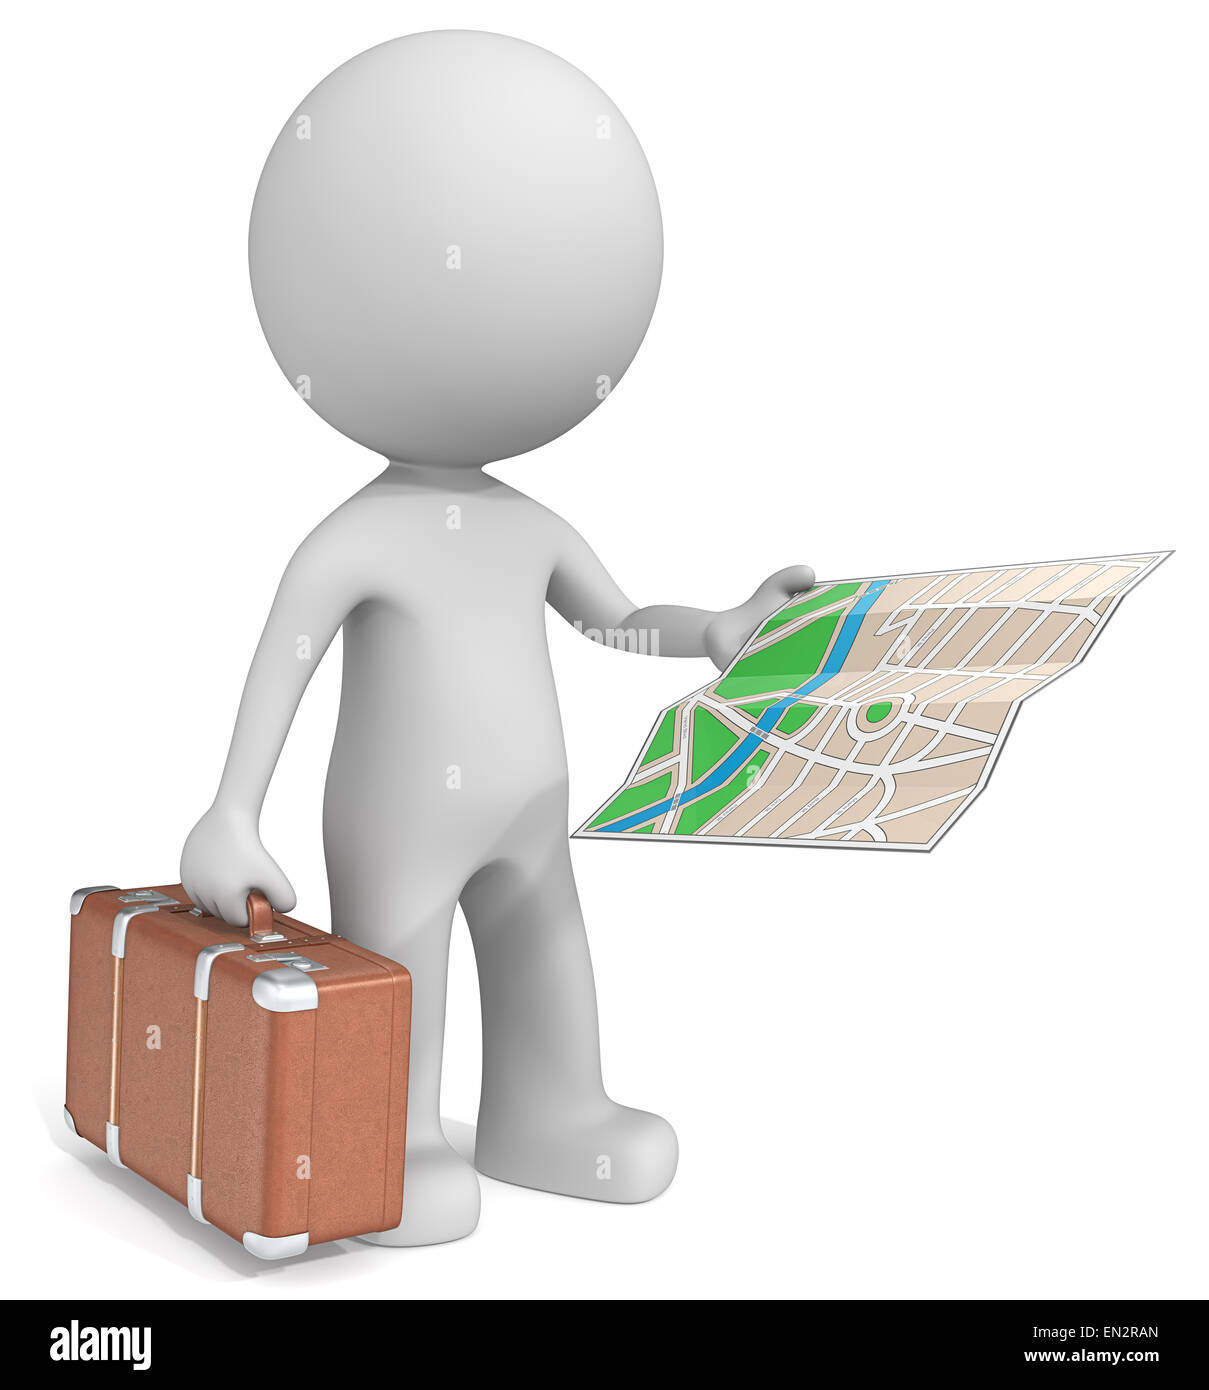 The dude 3D character holding retro suitcase and city map. - Stock Image